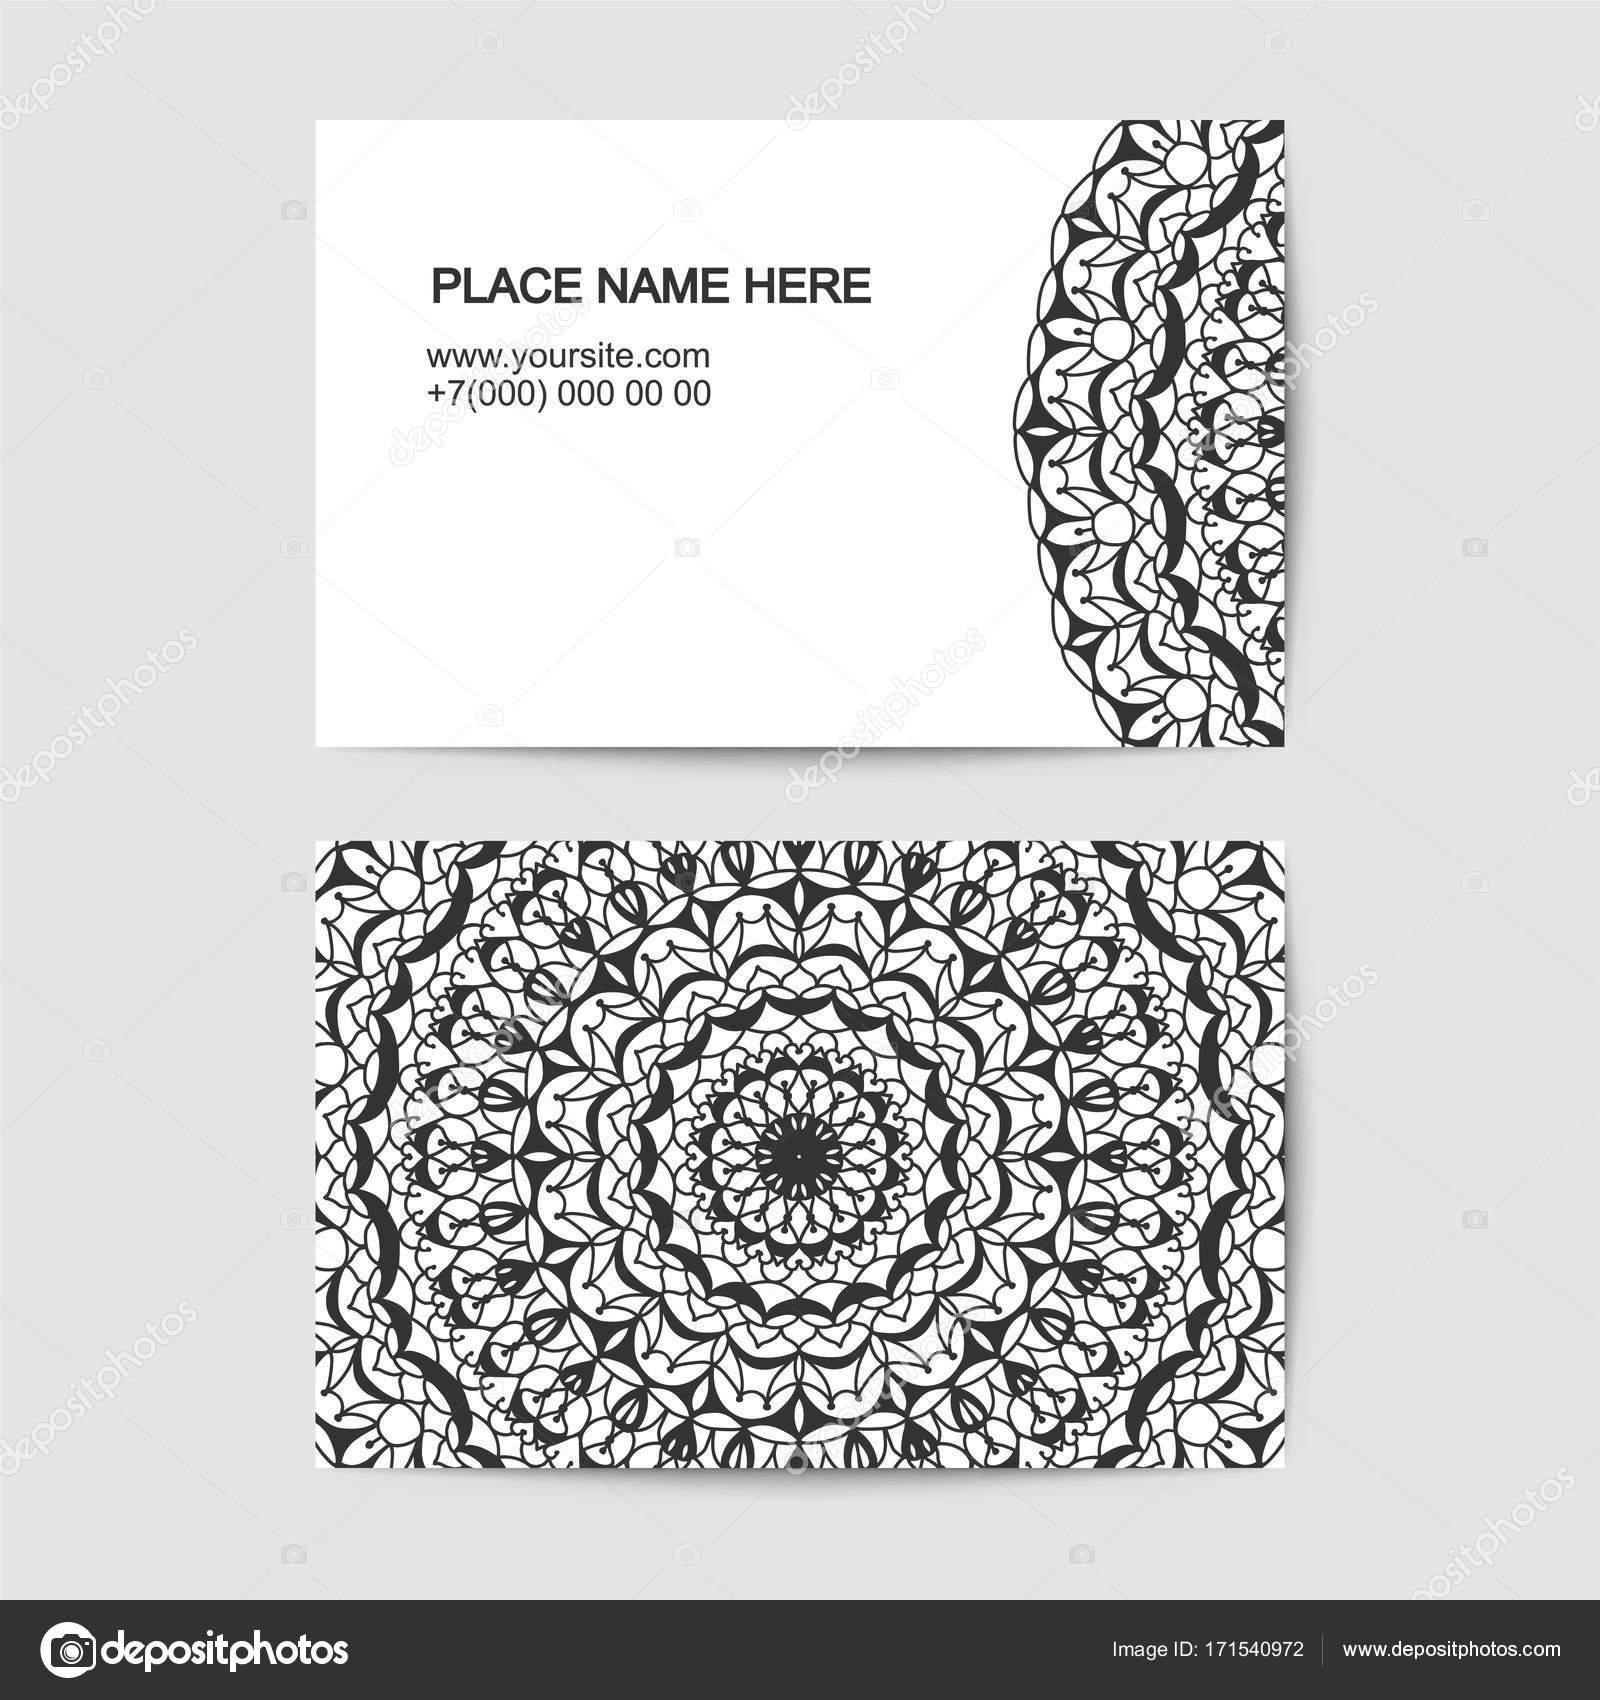 visit card template with lace vector pattern — Stock Vector ...